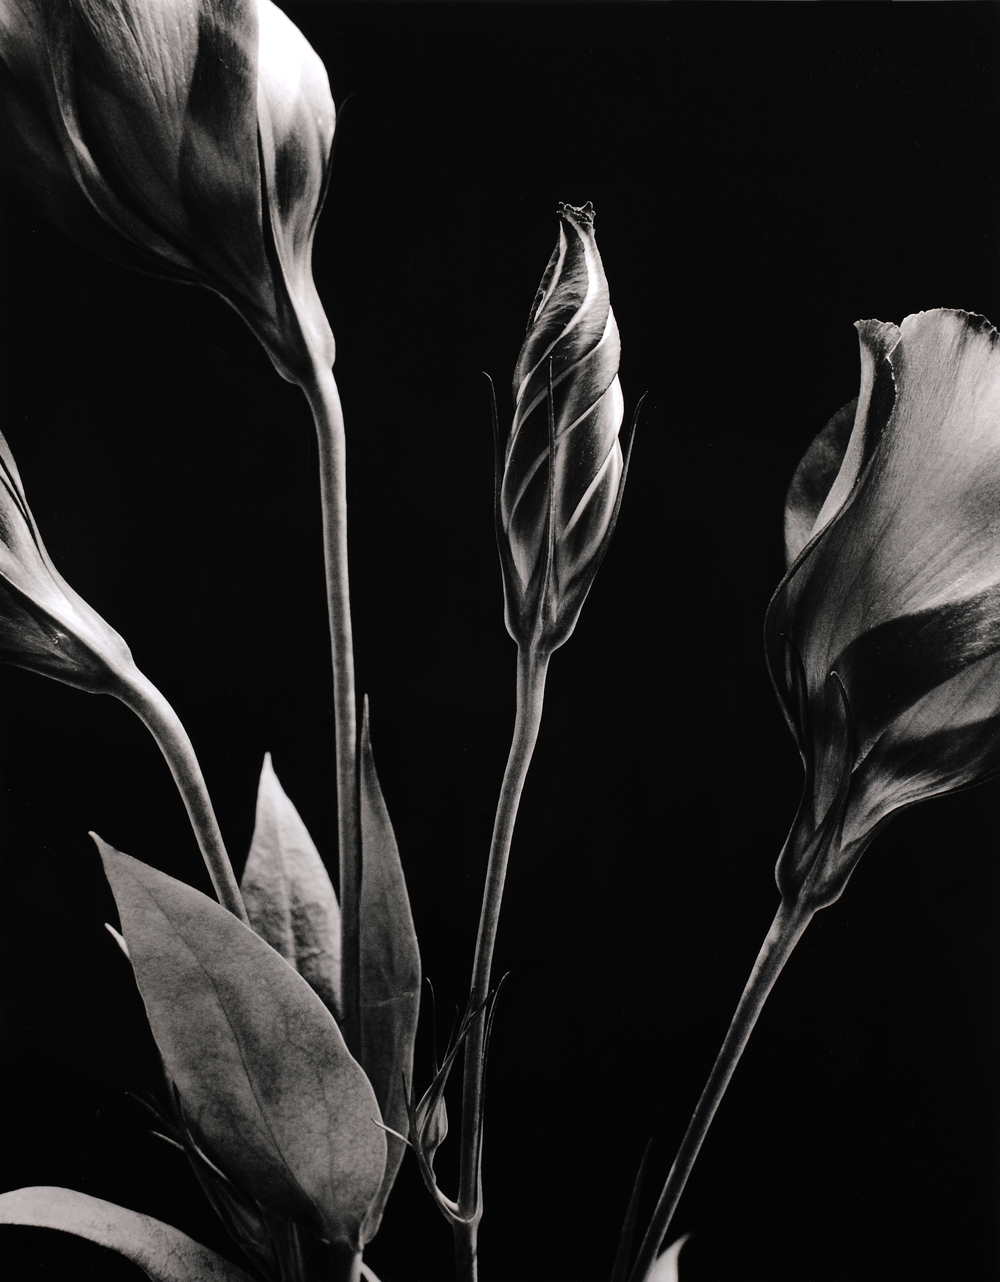 Isianthus 2,  Silver Gelatin Print (Edition of 2), 40 x 50 cm, £2750.